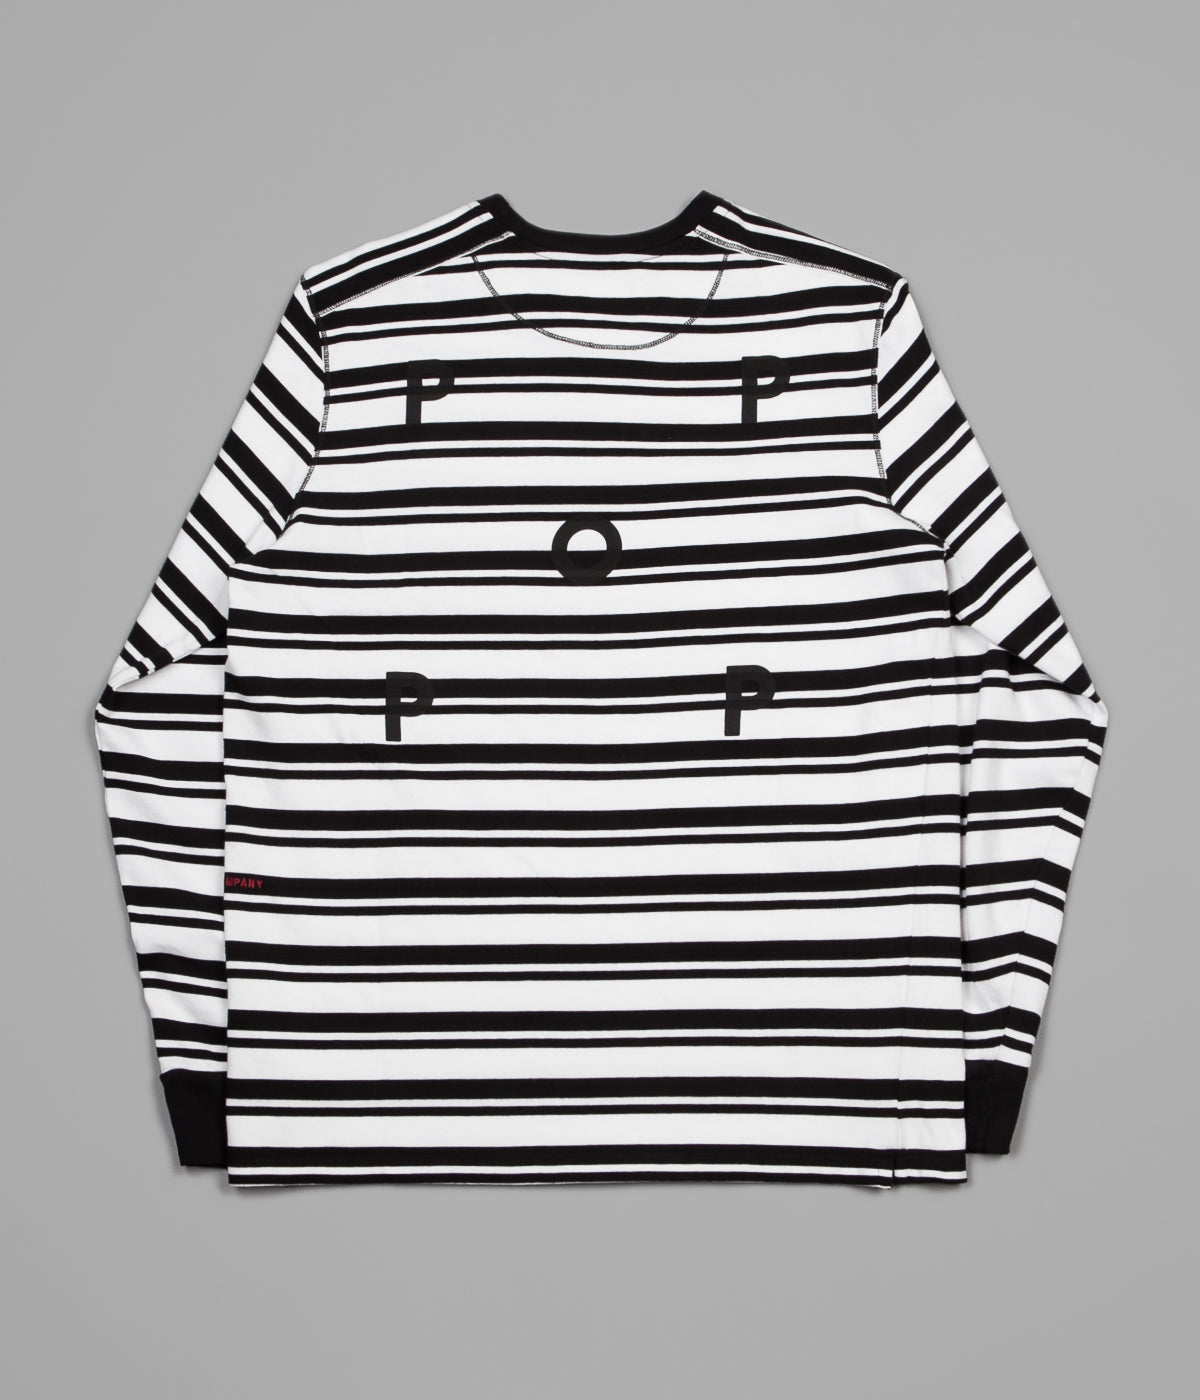 Pop Trading Company Striped Long Sleeve T-Shirt - Black / White